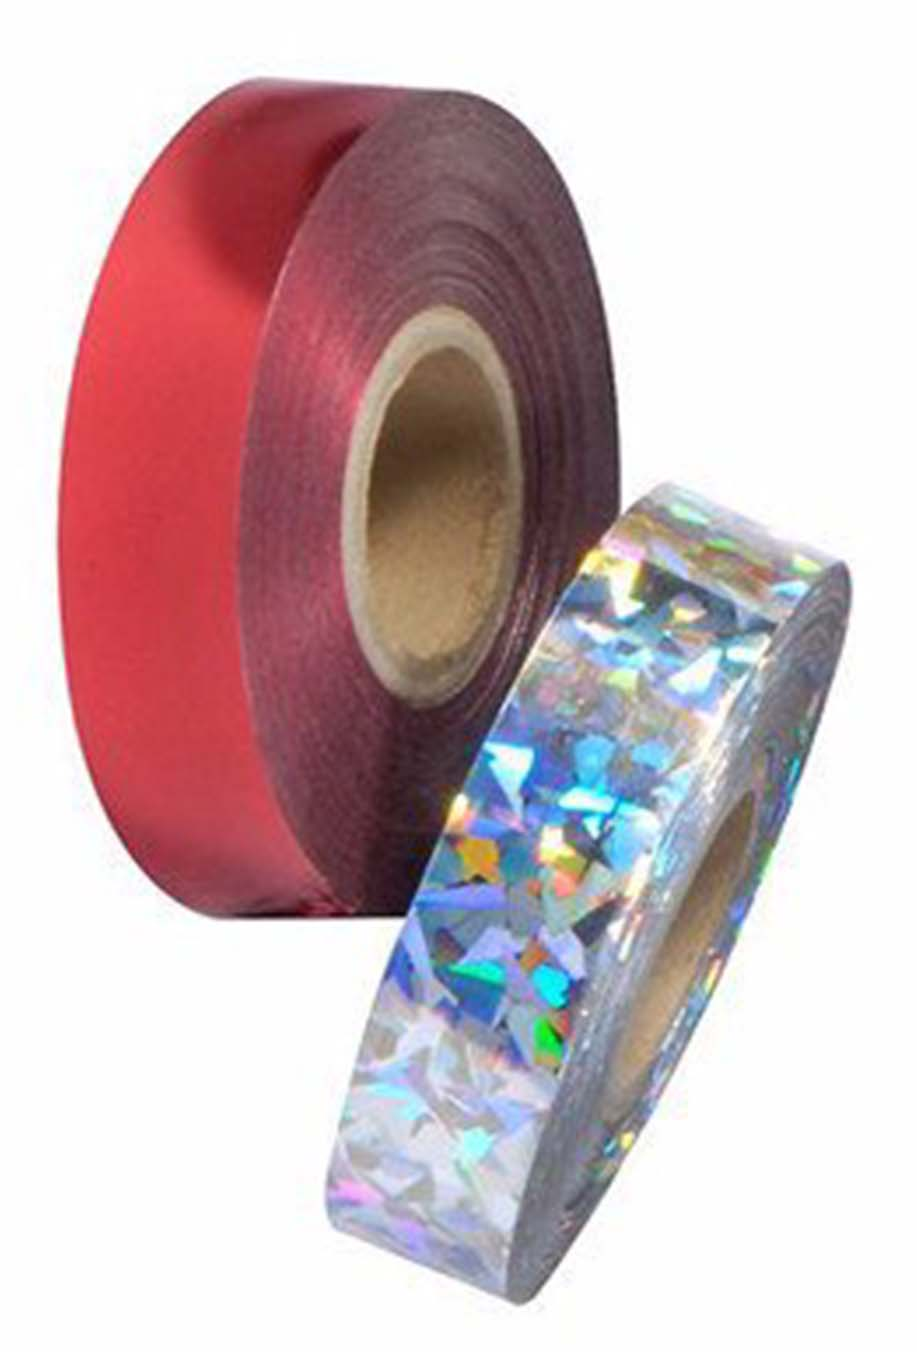 Bird Scare Tape ZL0019 Reflective Bird Scare Tape